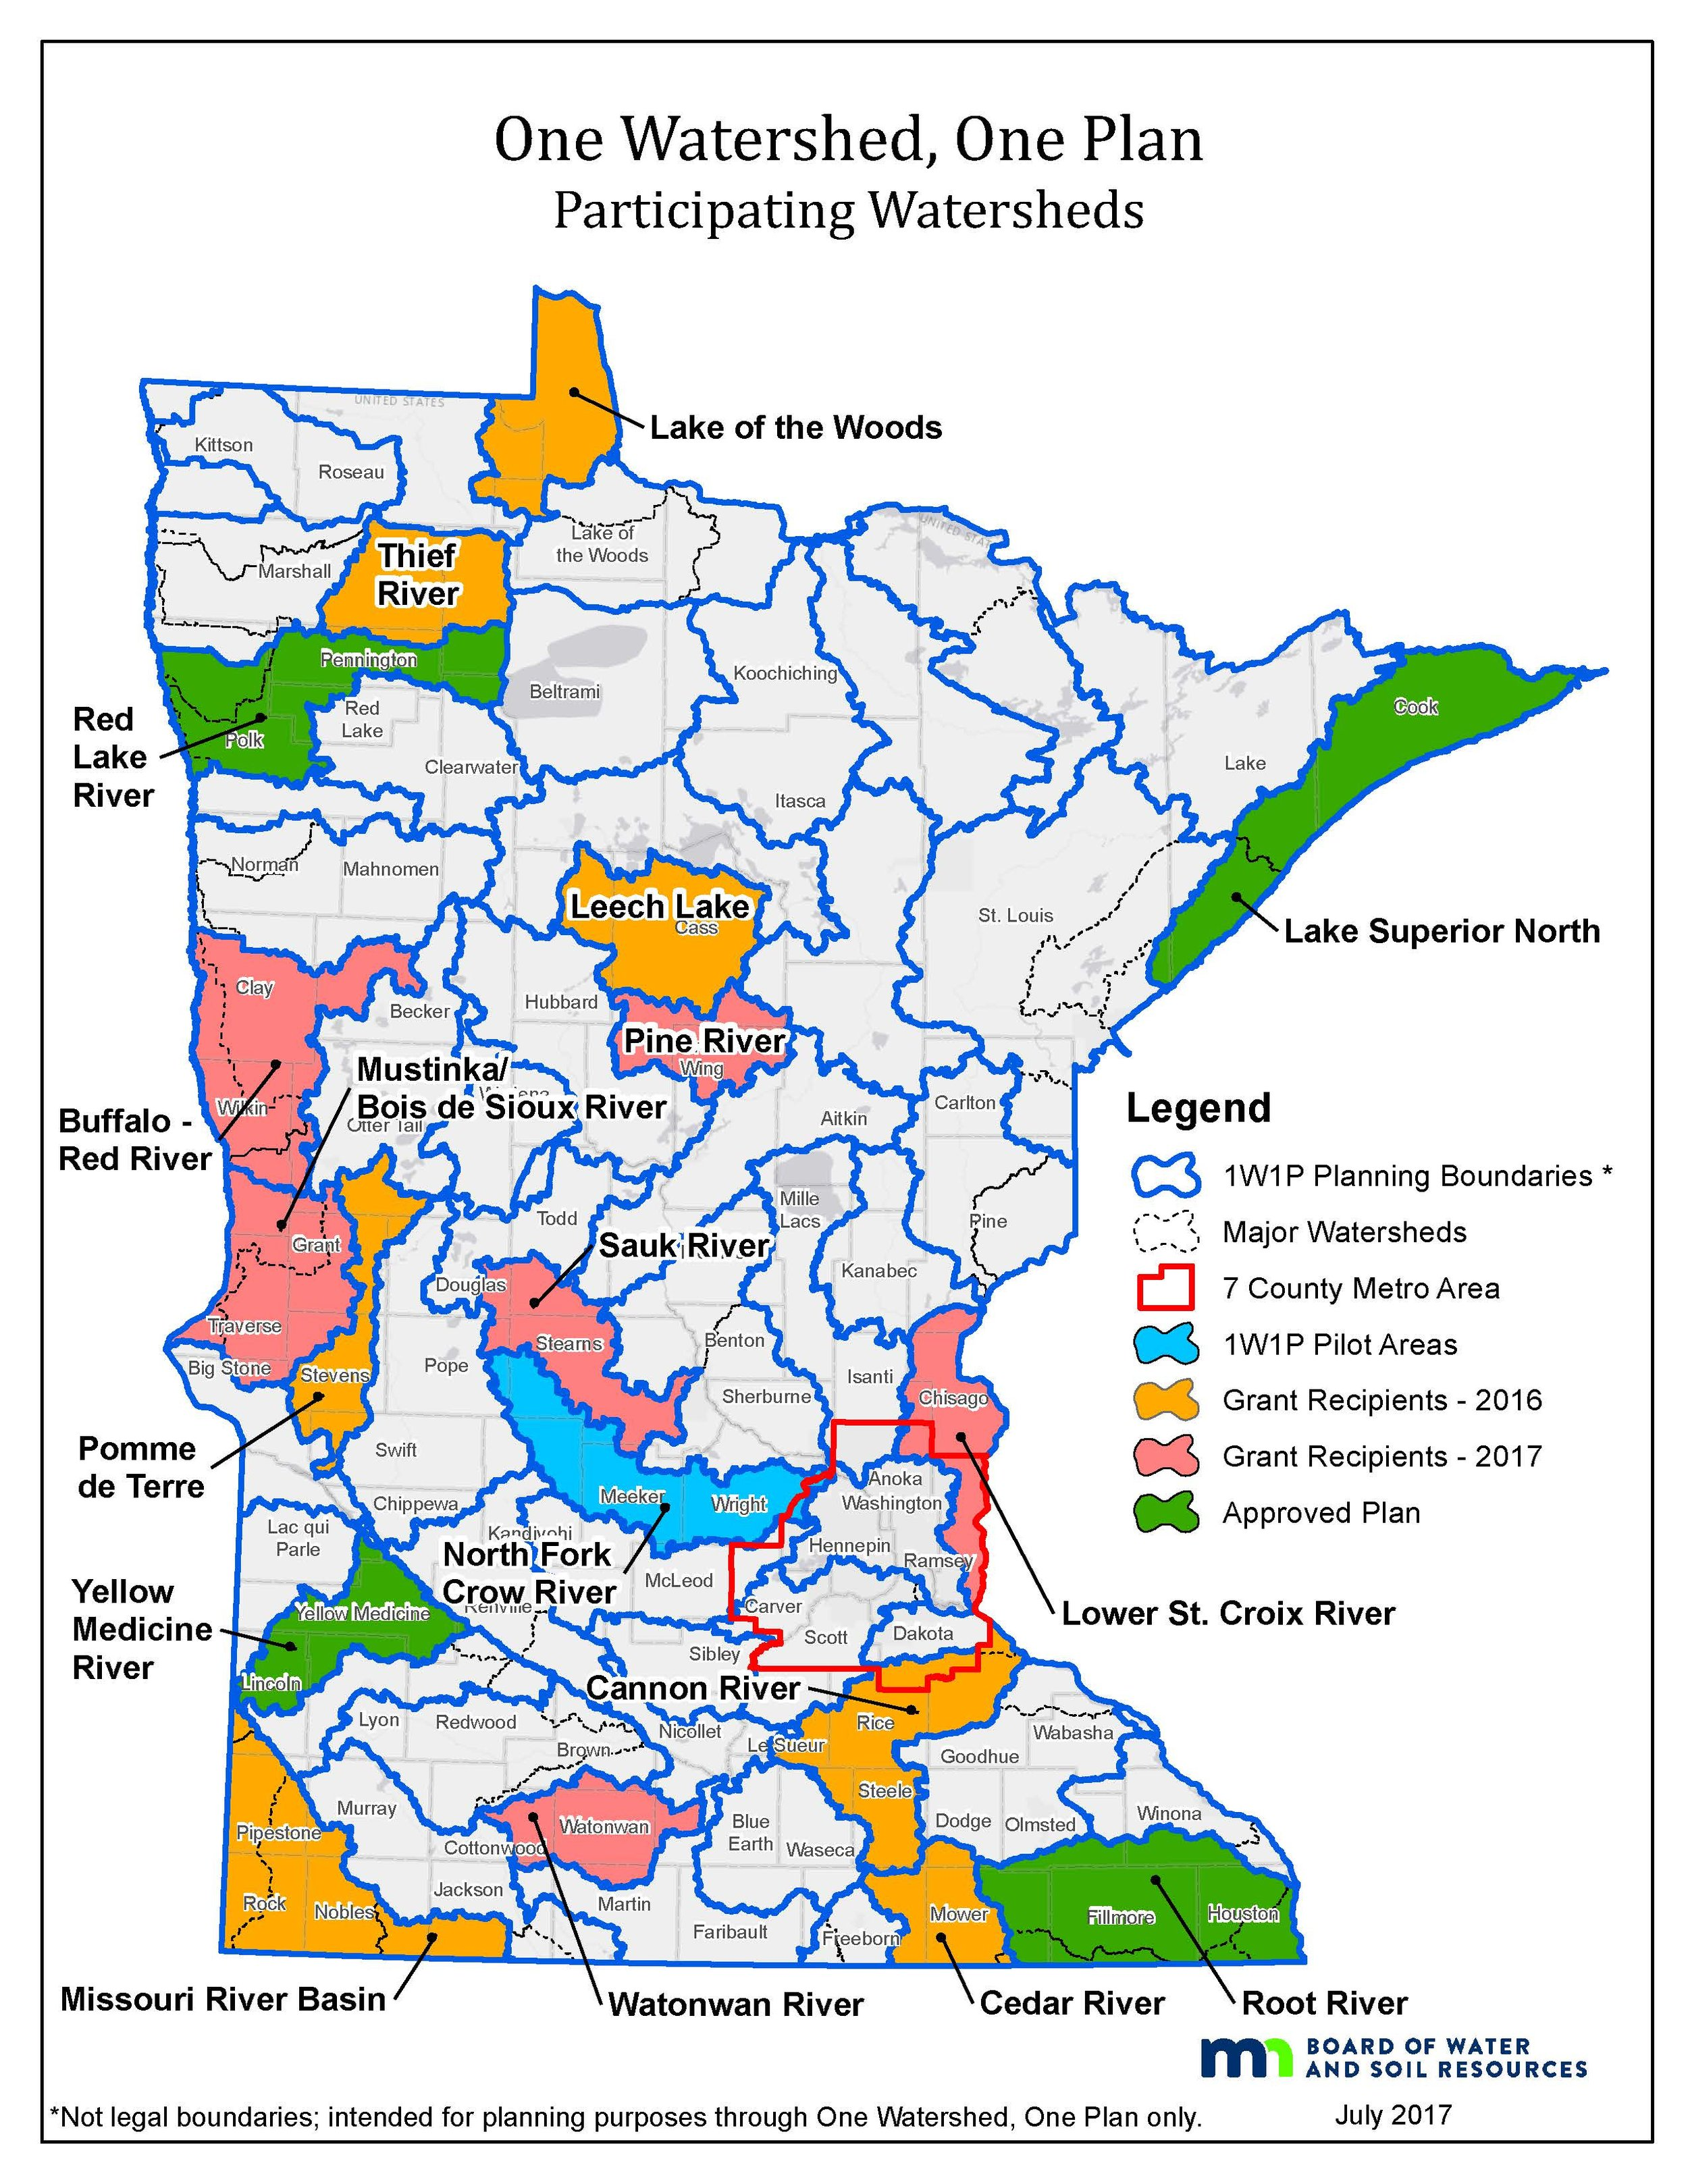 1W1P_Participating_Watersheds_Map.jpg